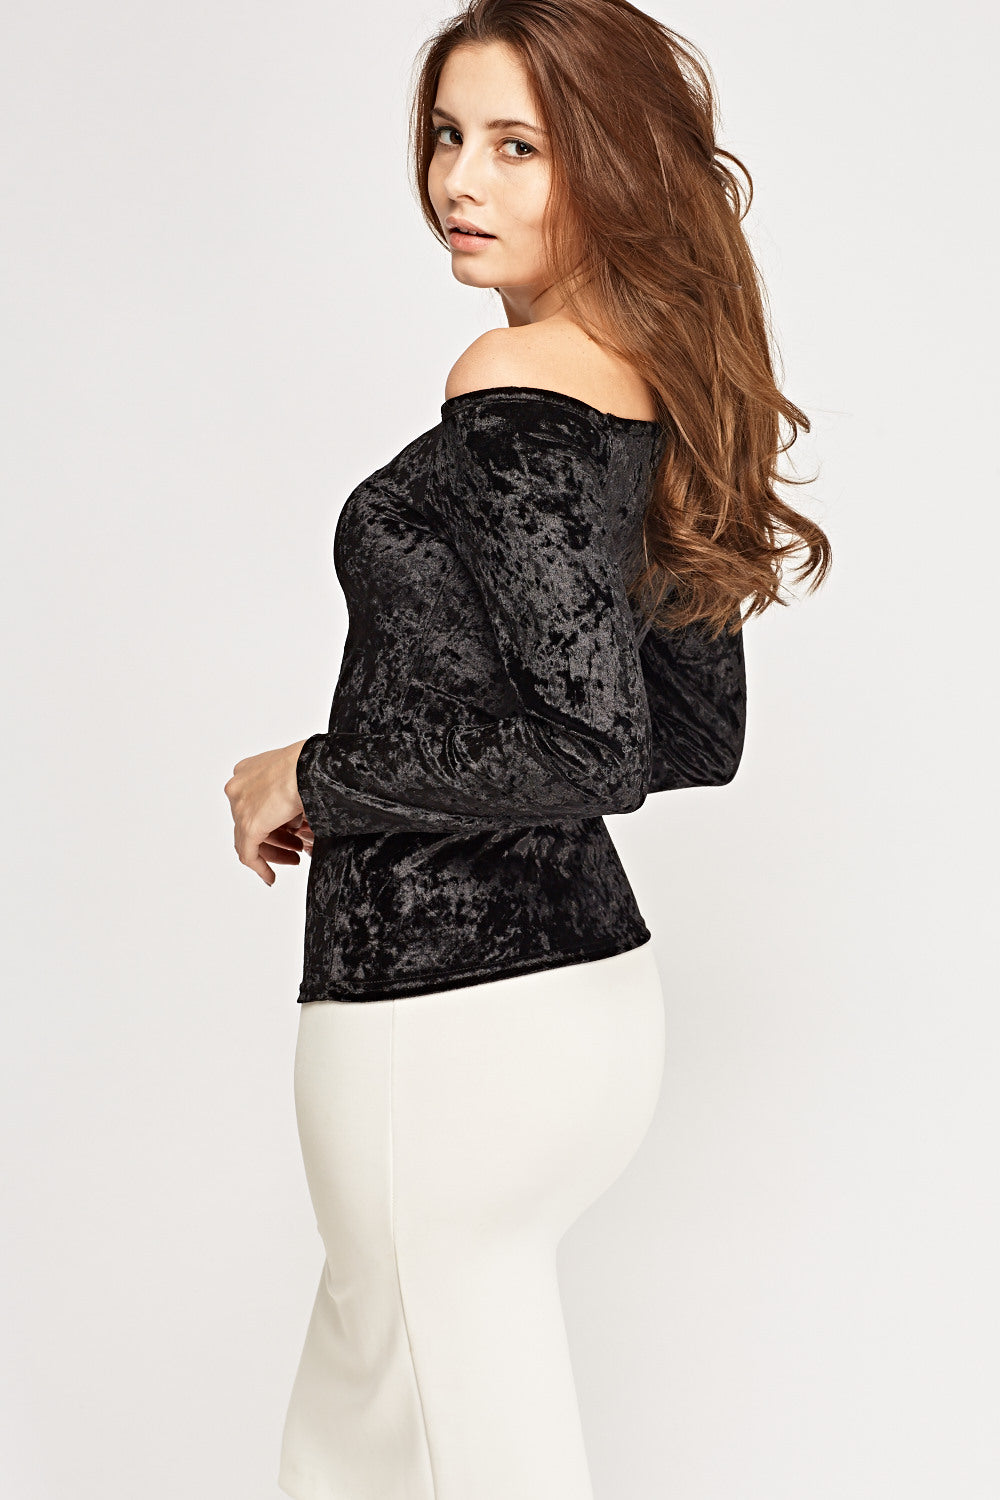 Top aterciopelado off shoulder - MiTiendaSecreta